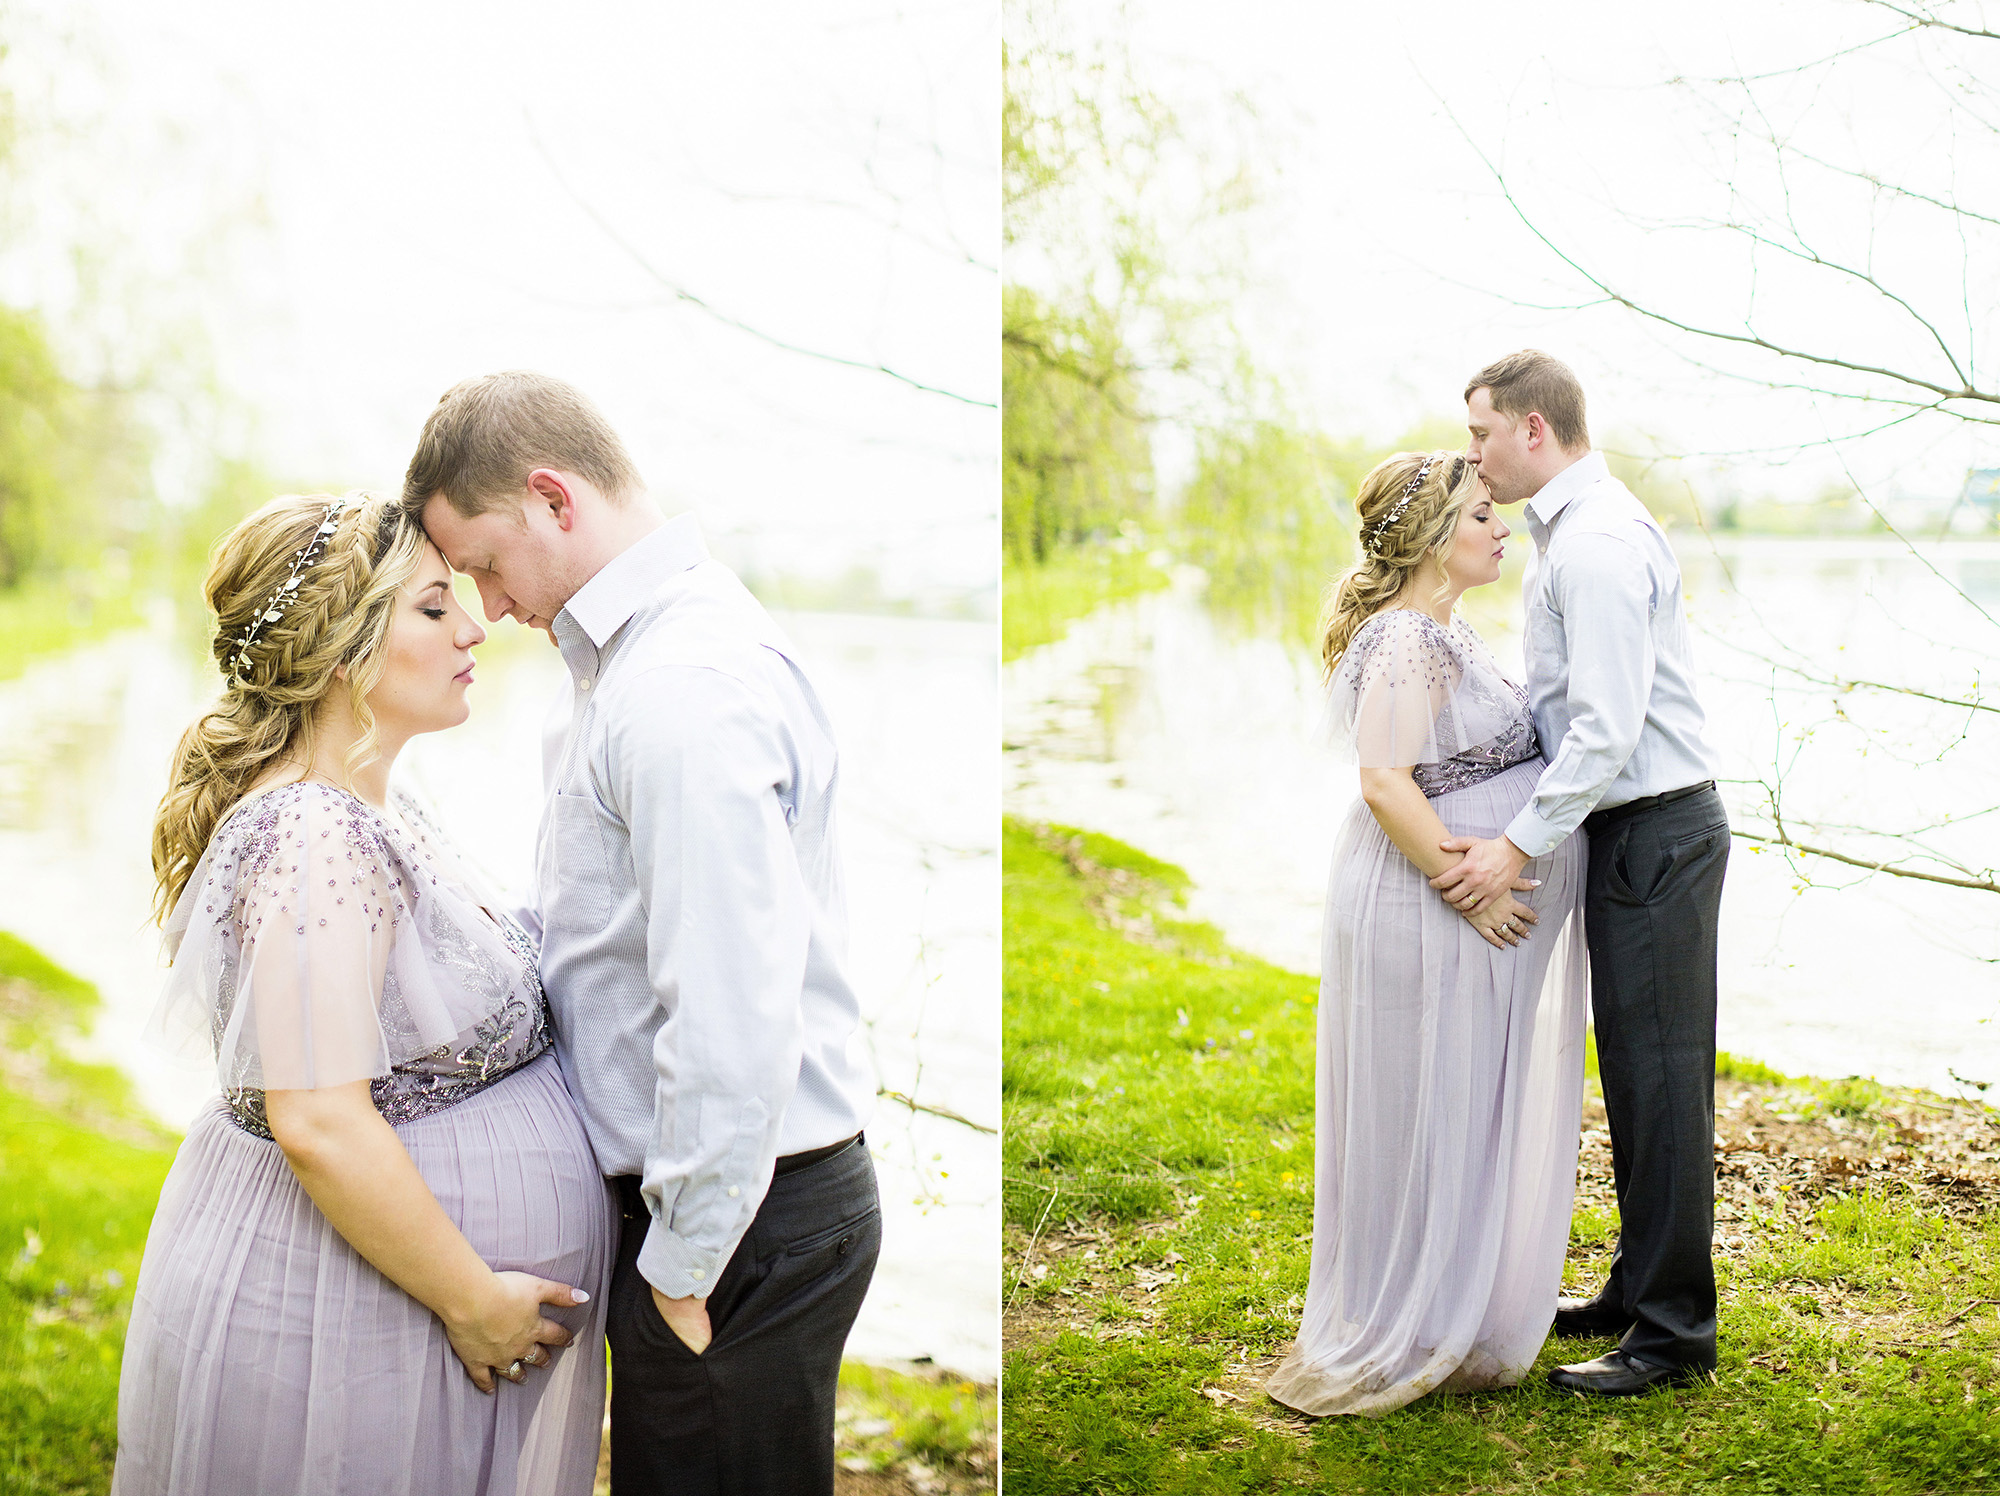 Seriously_Sabrina_Photography_Lexington_Kentucky_Fairytale_Maternity_Portraits_Horse_Park_Reynolds_32.jpg